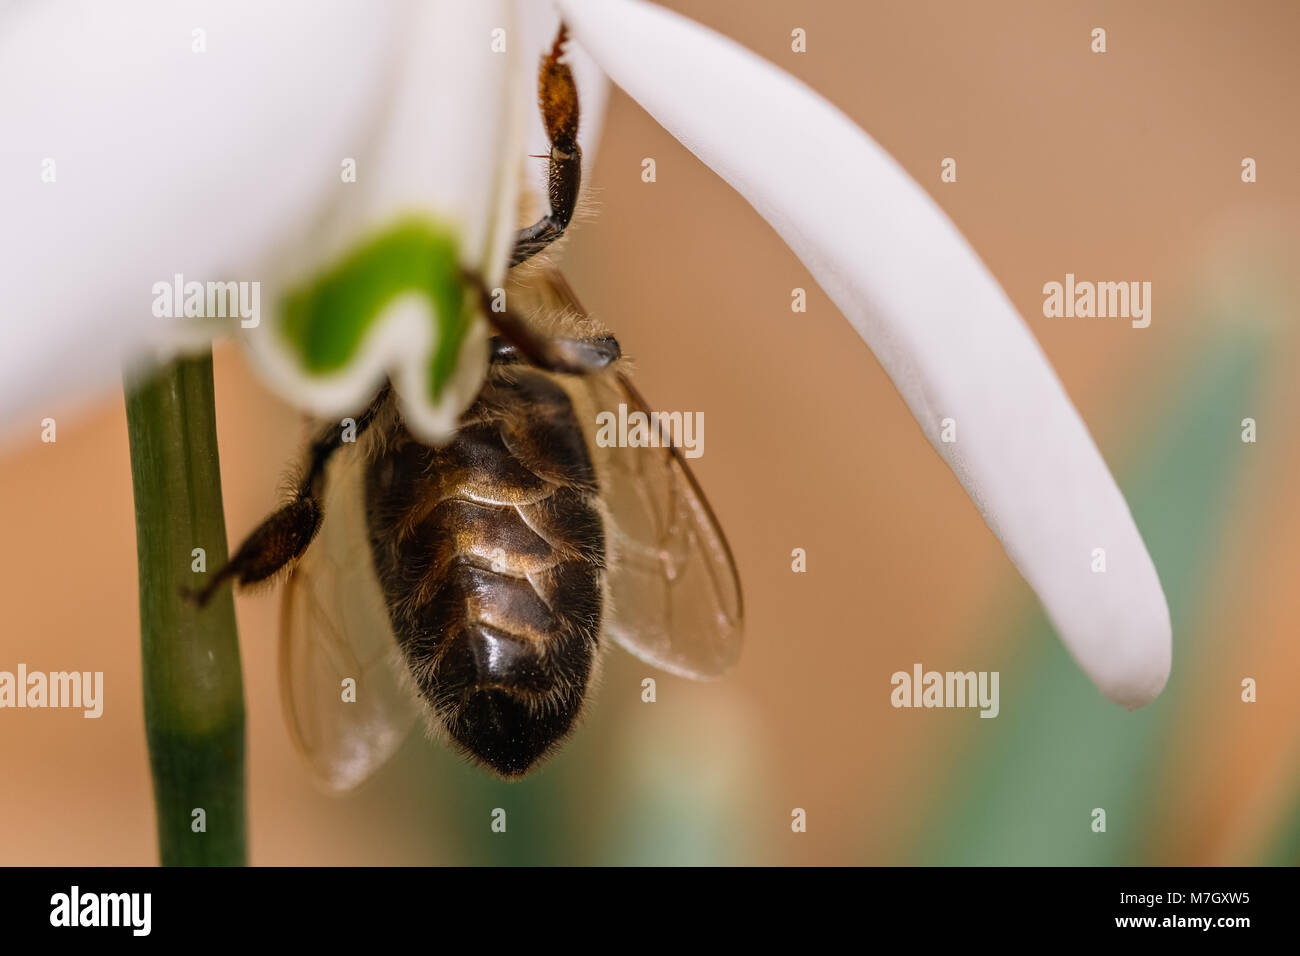 Small common snowdrop flower in early spring with bee inside. Water drop on a white petals. Detailed macro shot. - Stock Image